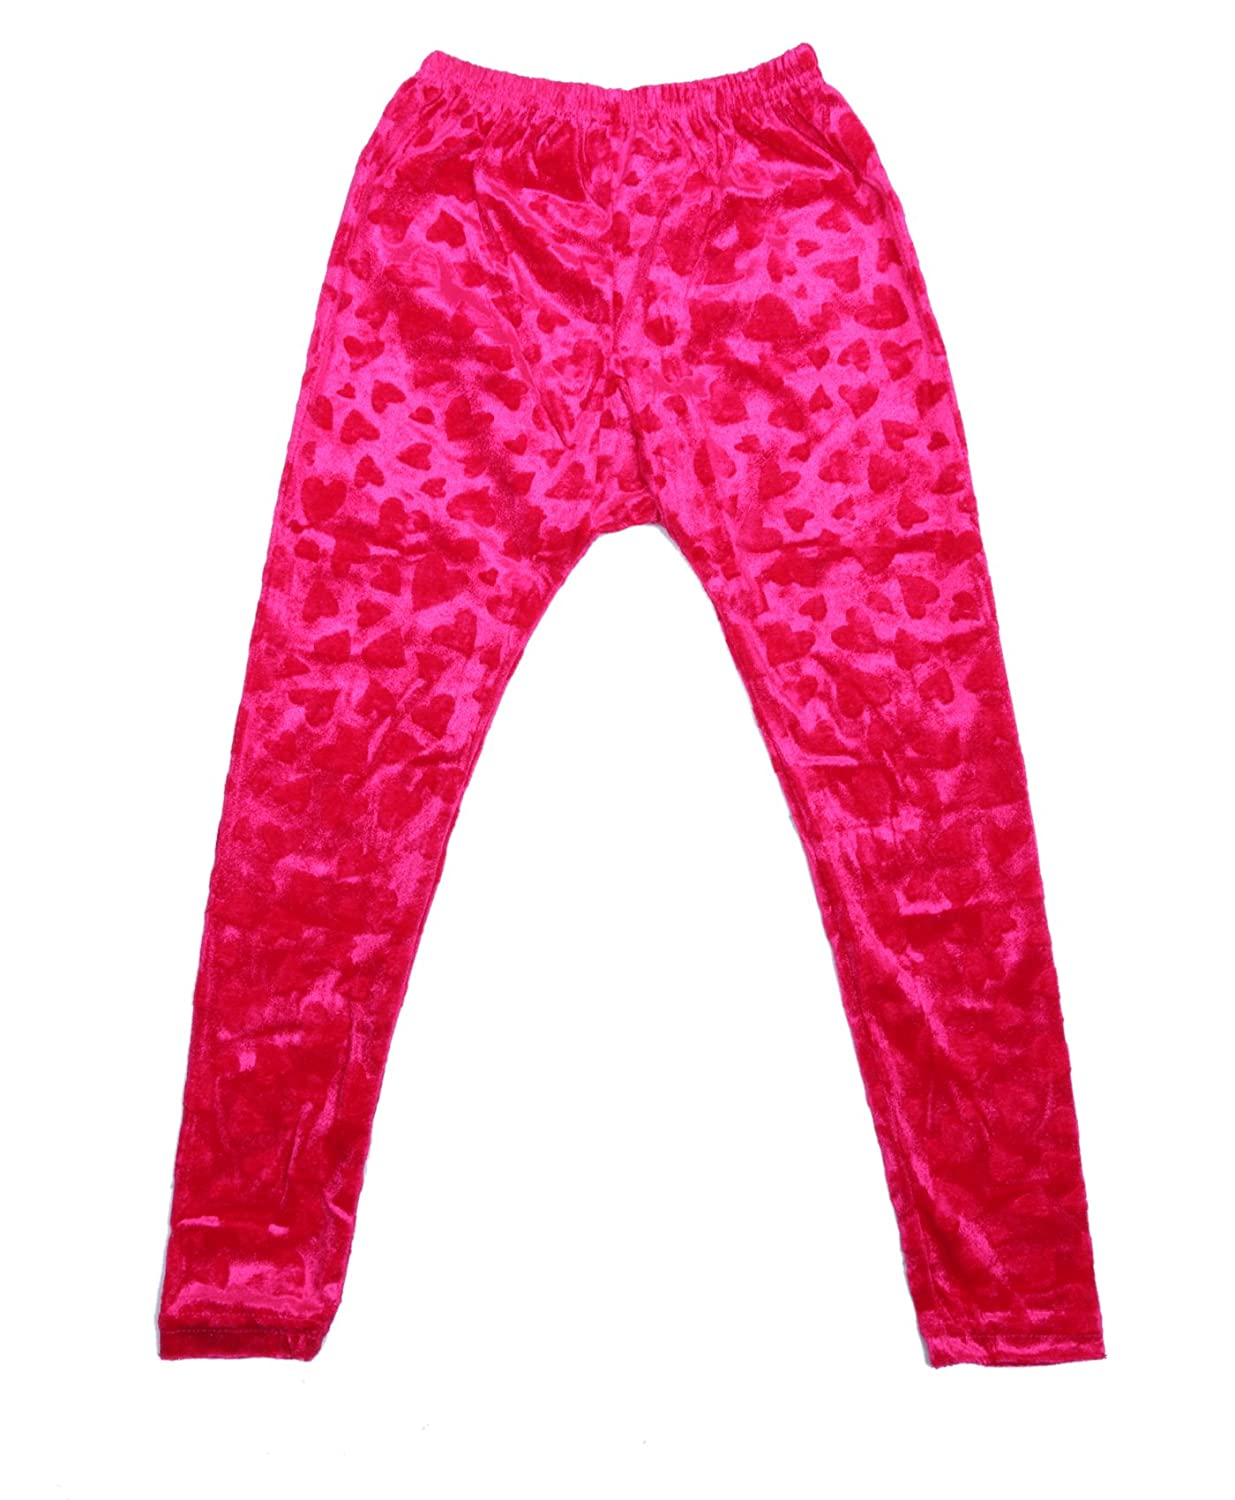 Indistar Kids Embossed Multicolor Leggings Combo Pack of 2